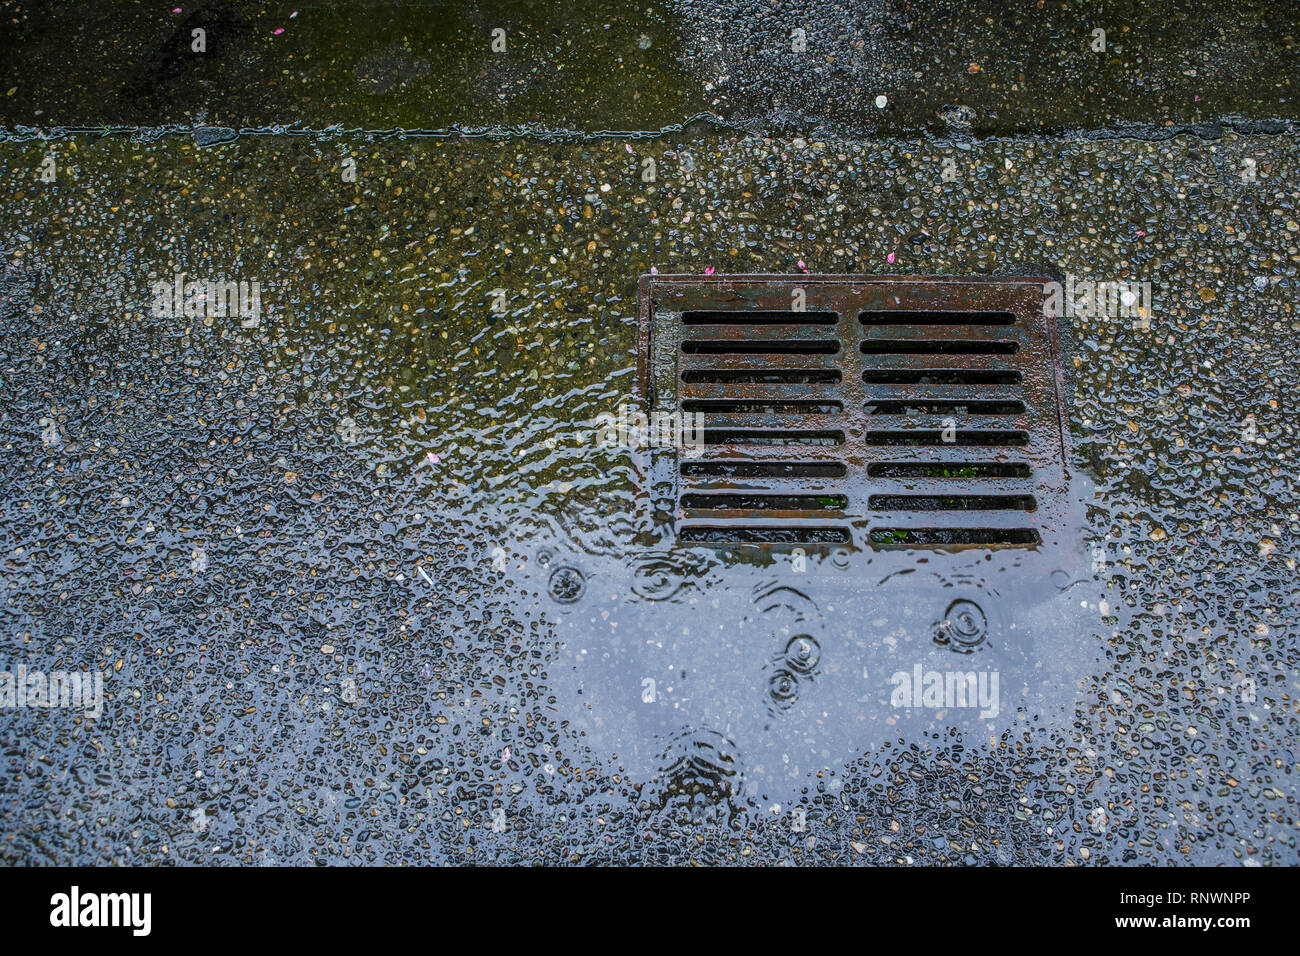 A stormwater runoff drain in a concrete street. - Stock Image